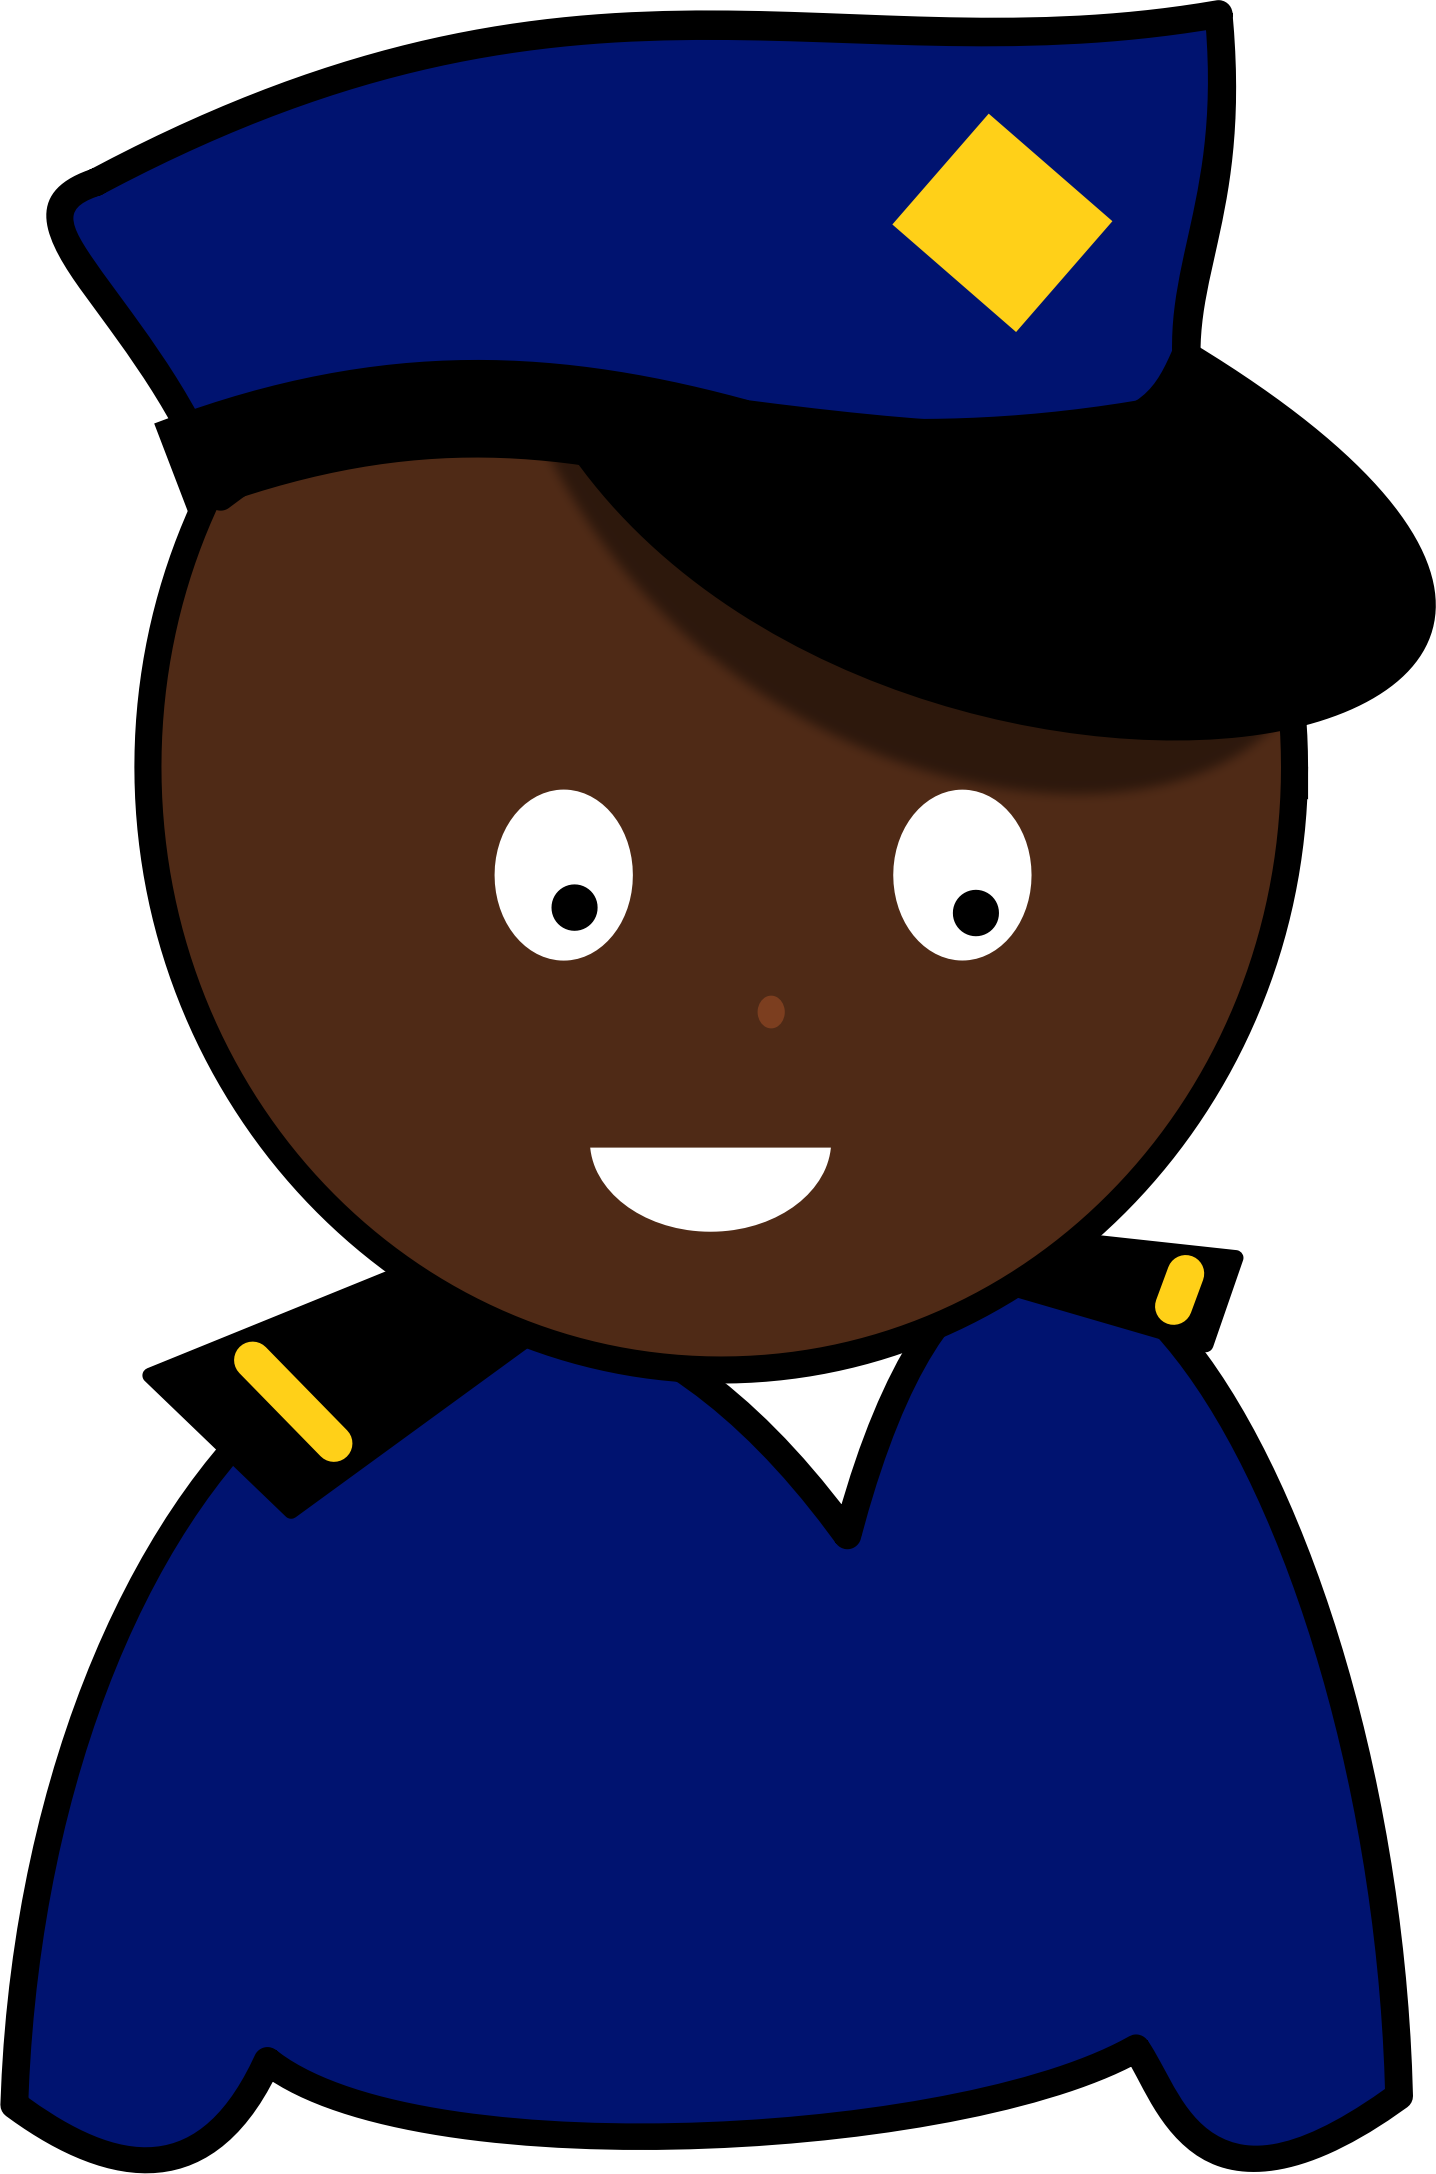 Hats clipart police man. African policeman big image